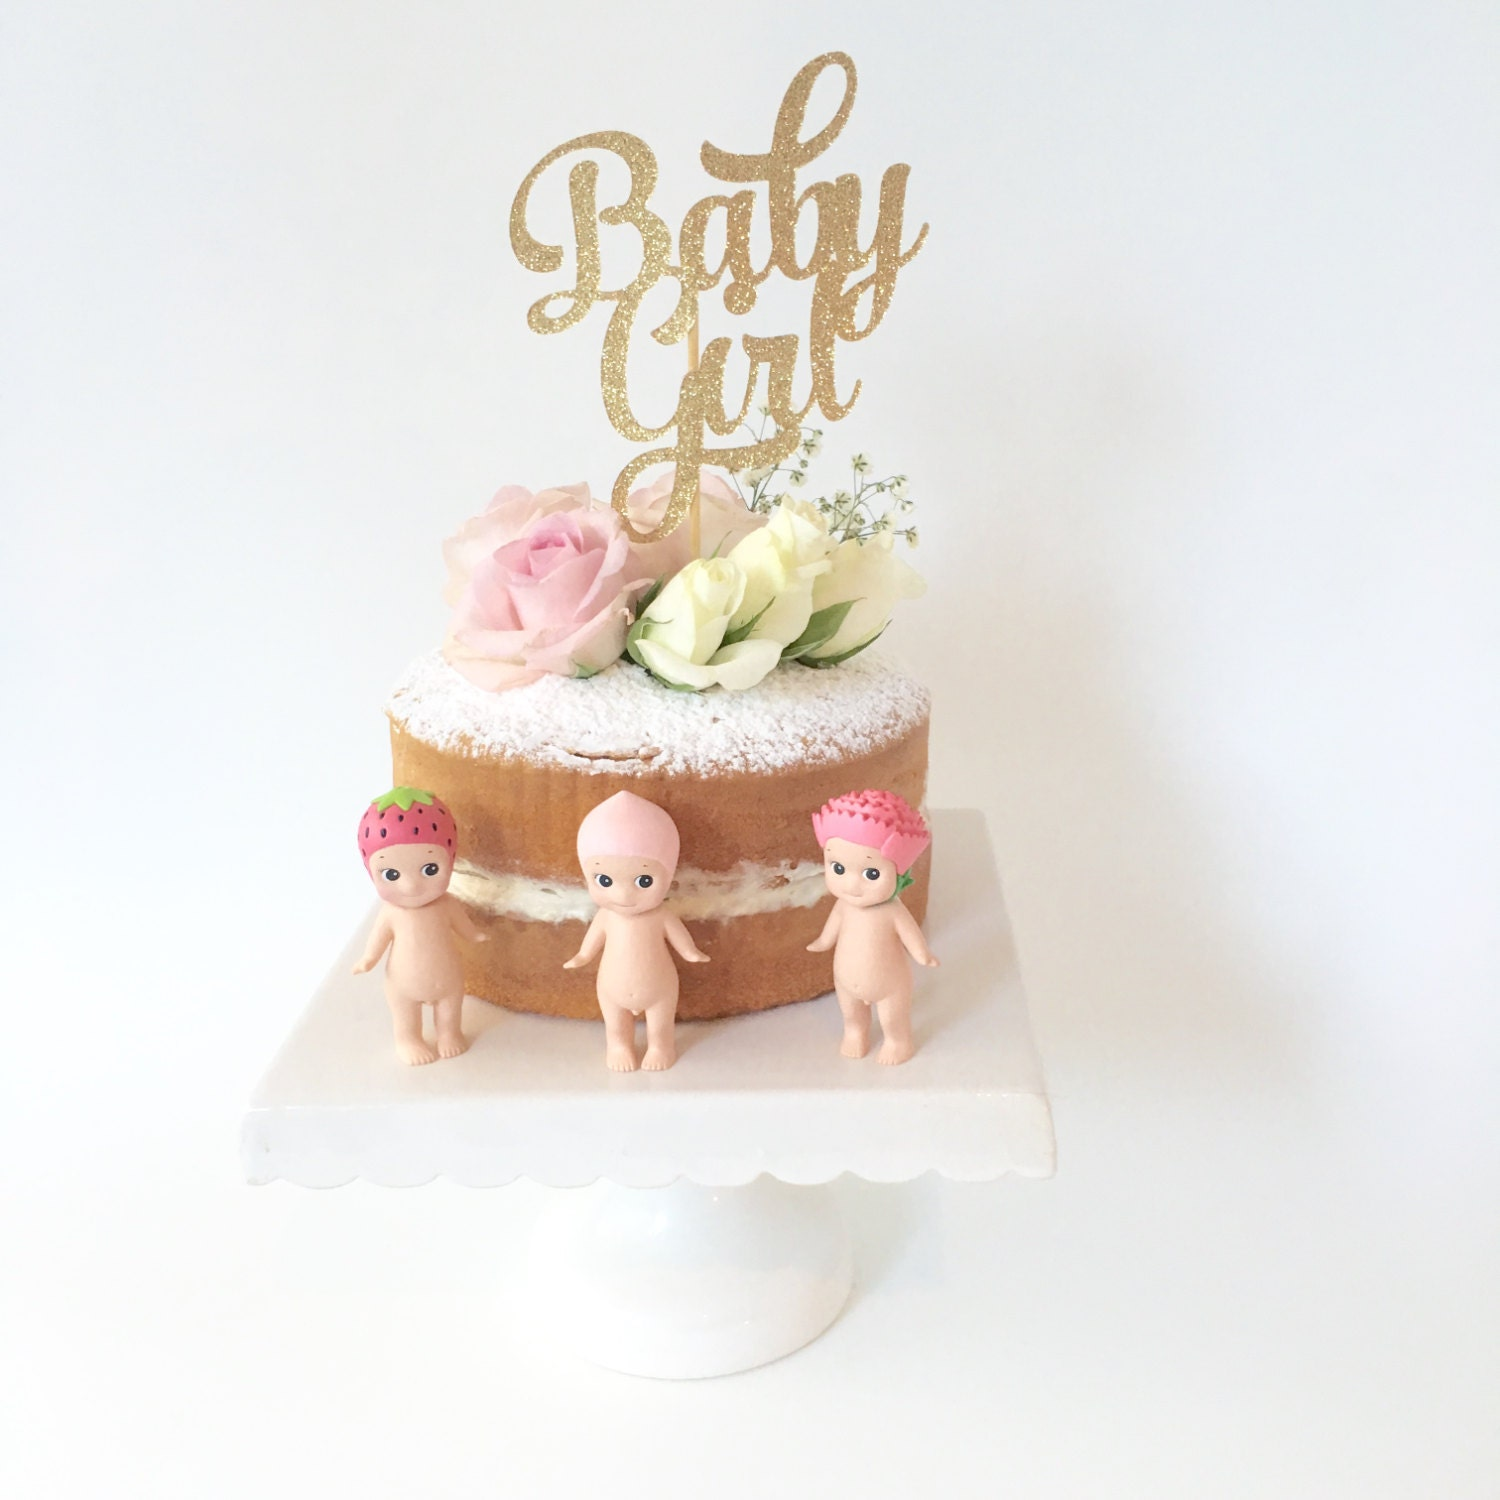 Cake Toppers Baby Shower Etsy : Baby Girl Gold Glitter Cake Topper / Baby Shower Gold Cake